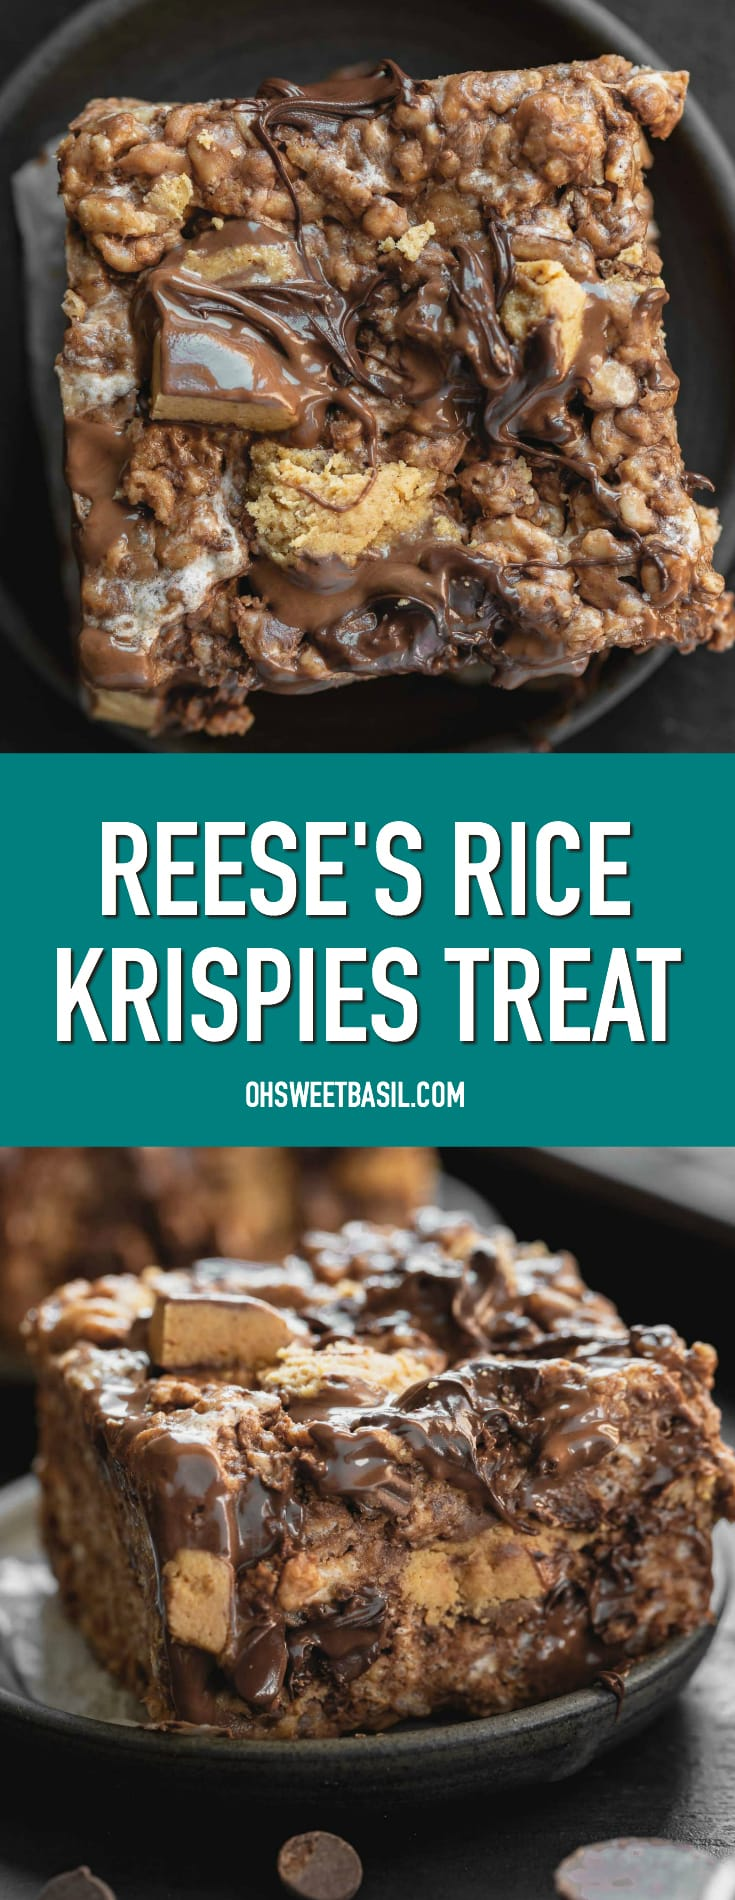 a photo of a rice krispies treat loeaded with reese's peanut butter cups and melted chocolate chips on a small plate with a few chocolate chips and whole mini reese's cups in the foreground.